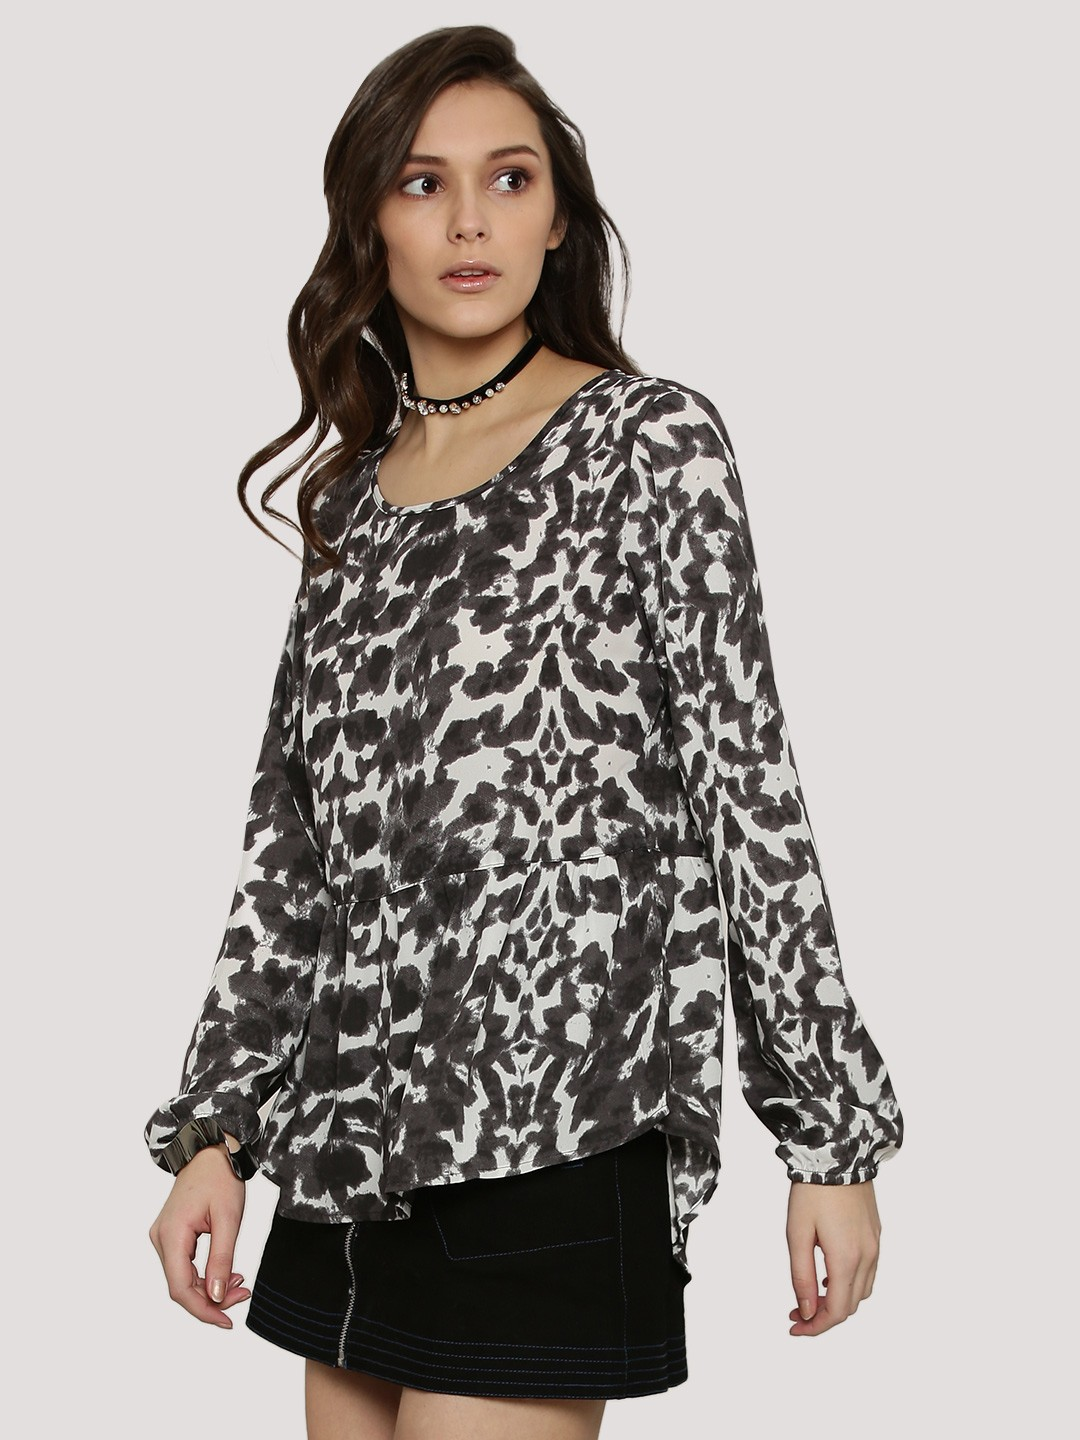 J.D.Y LUNAR ROCK Long Sleeve Peplum Blouse 1